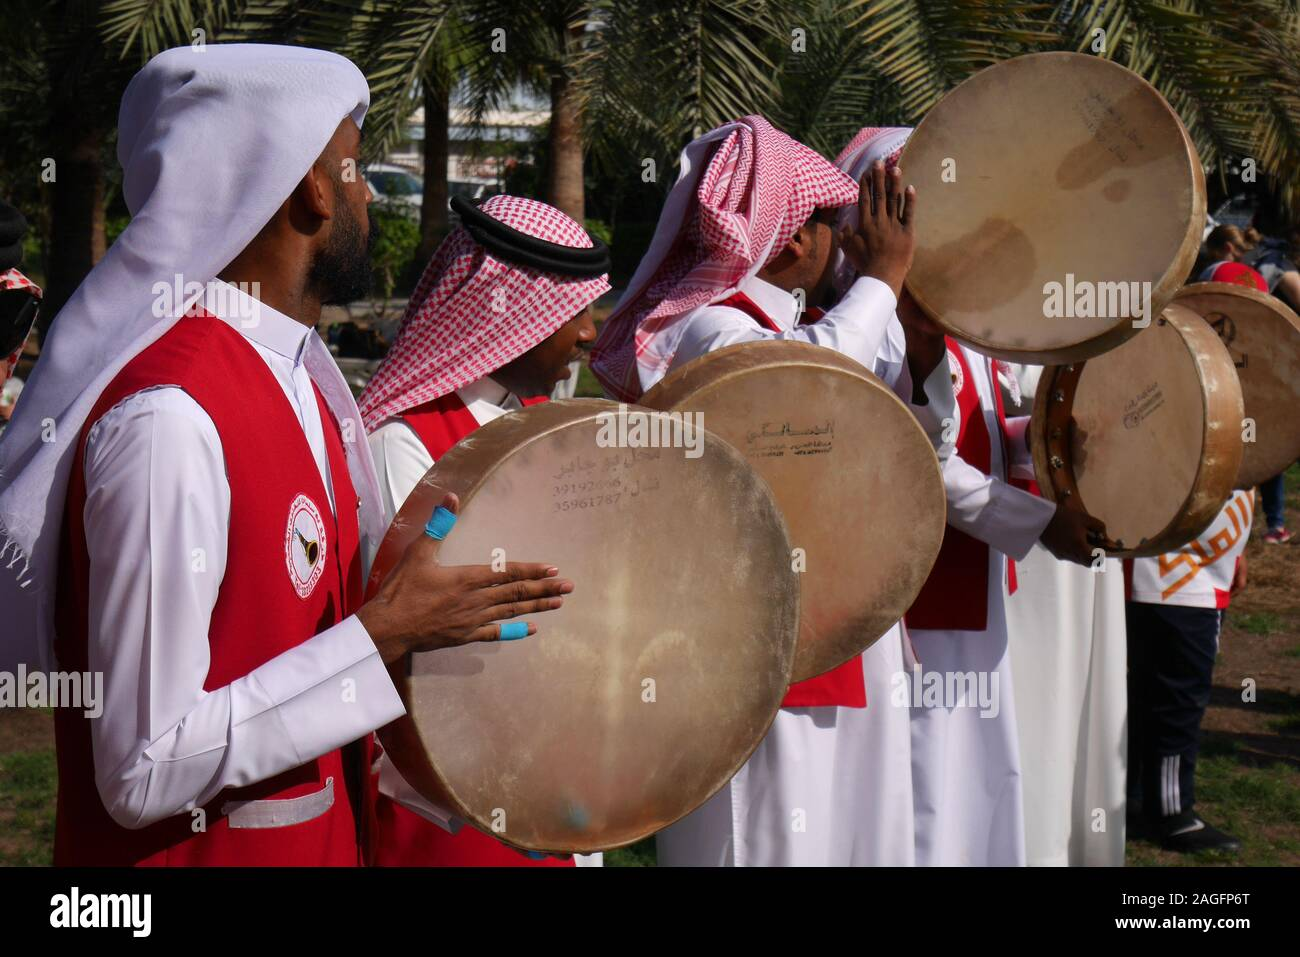 Bahraini musicians playing traditional music on tars (drums) on the opening day of the farmers market, 2019, Budaiya, Kingdom of Bahrain Stock Photo